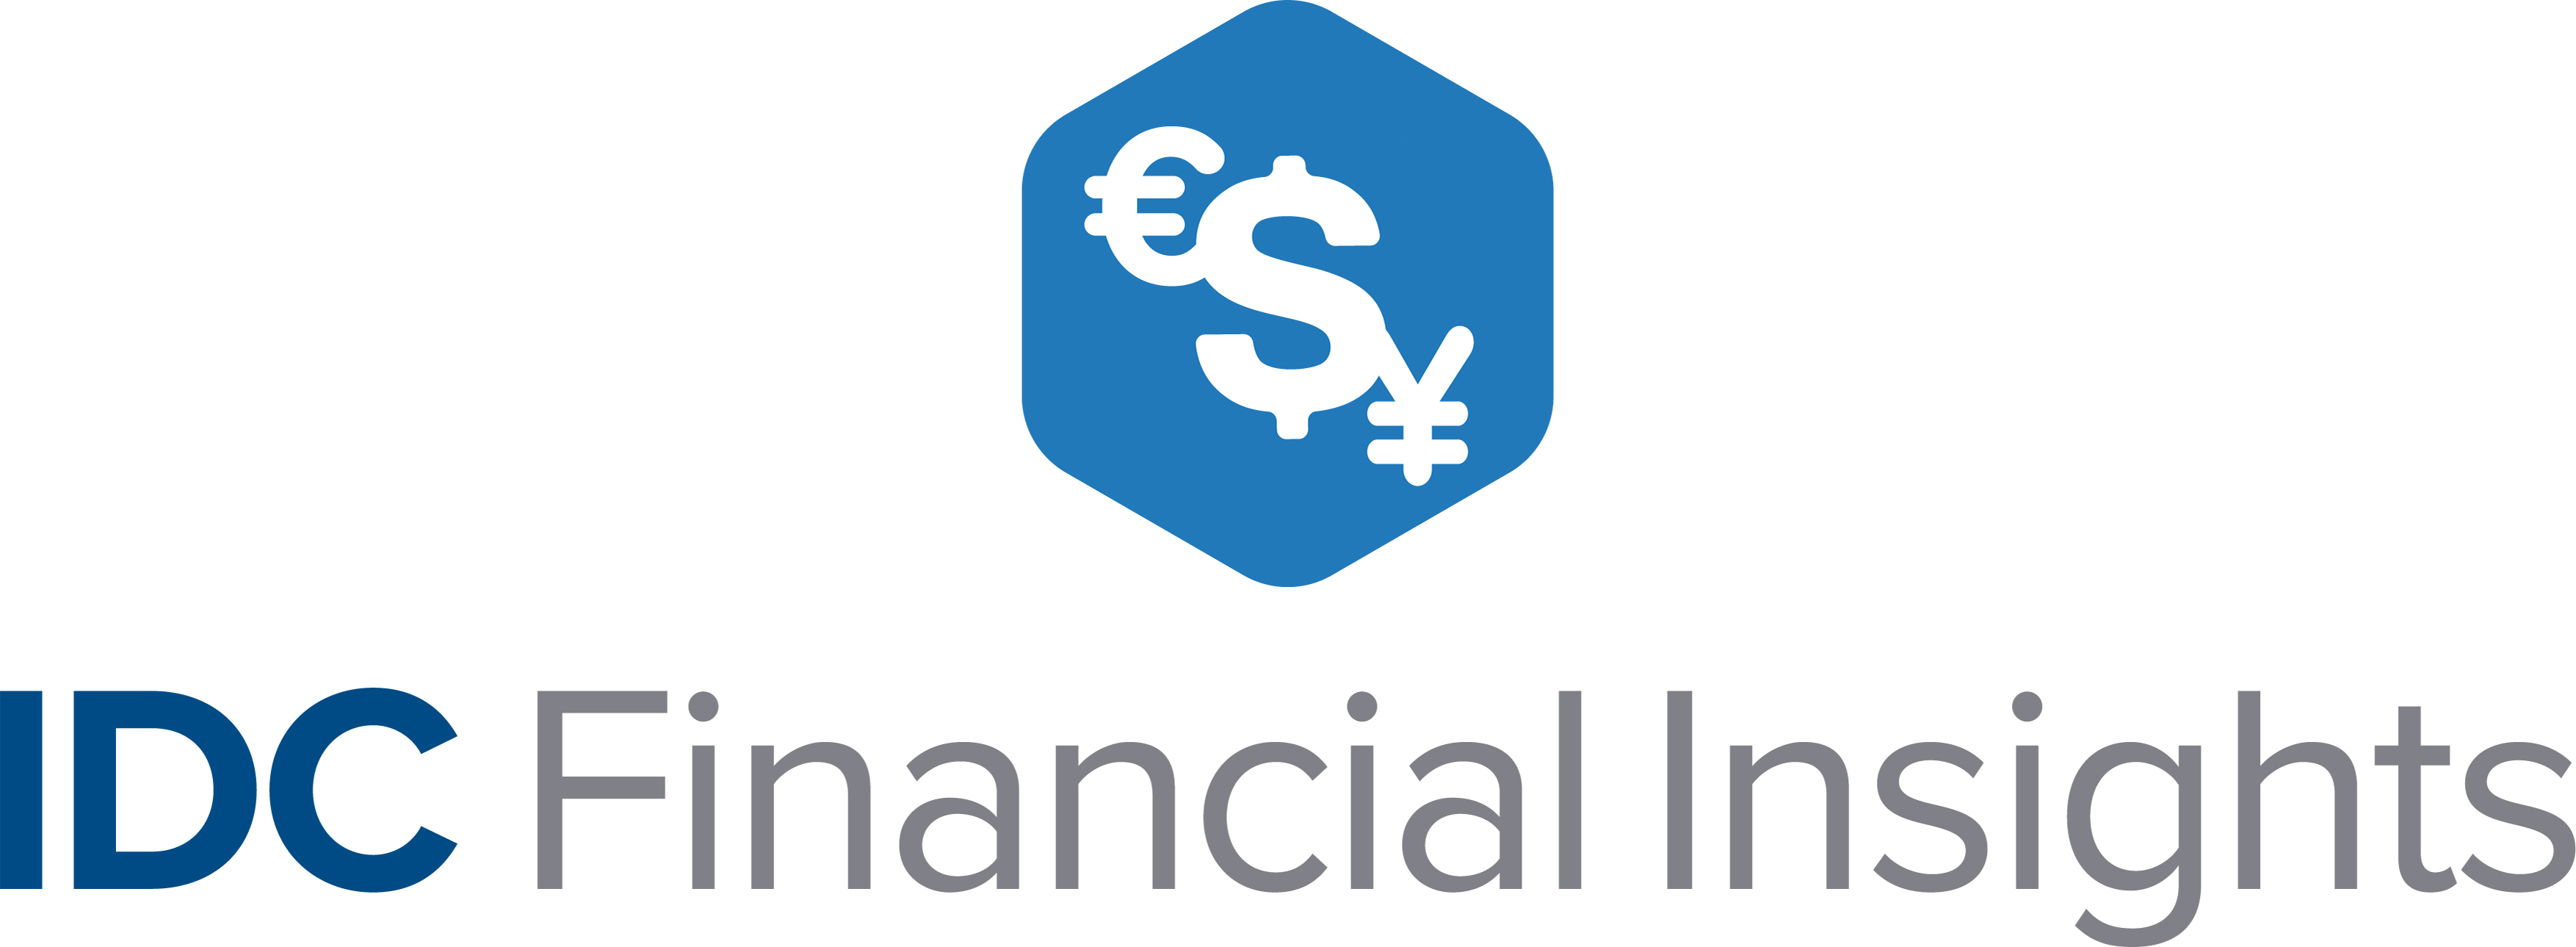 iconotype-insights-financial-fullcolor-vertical-35